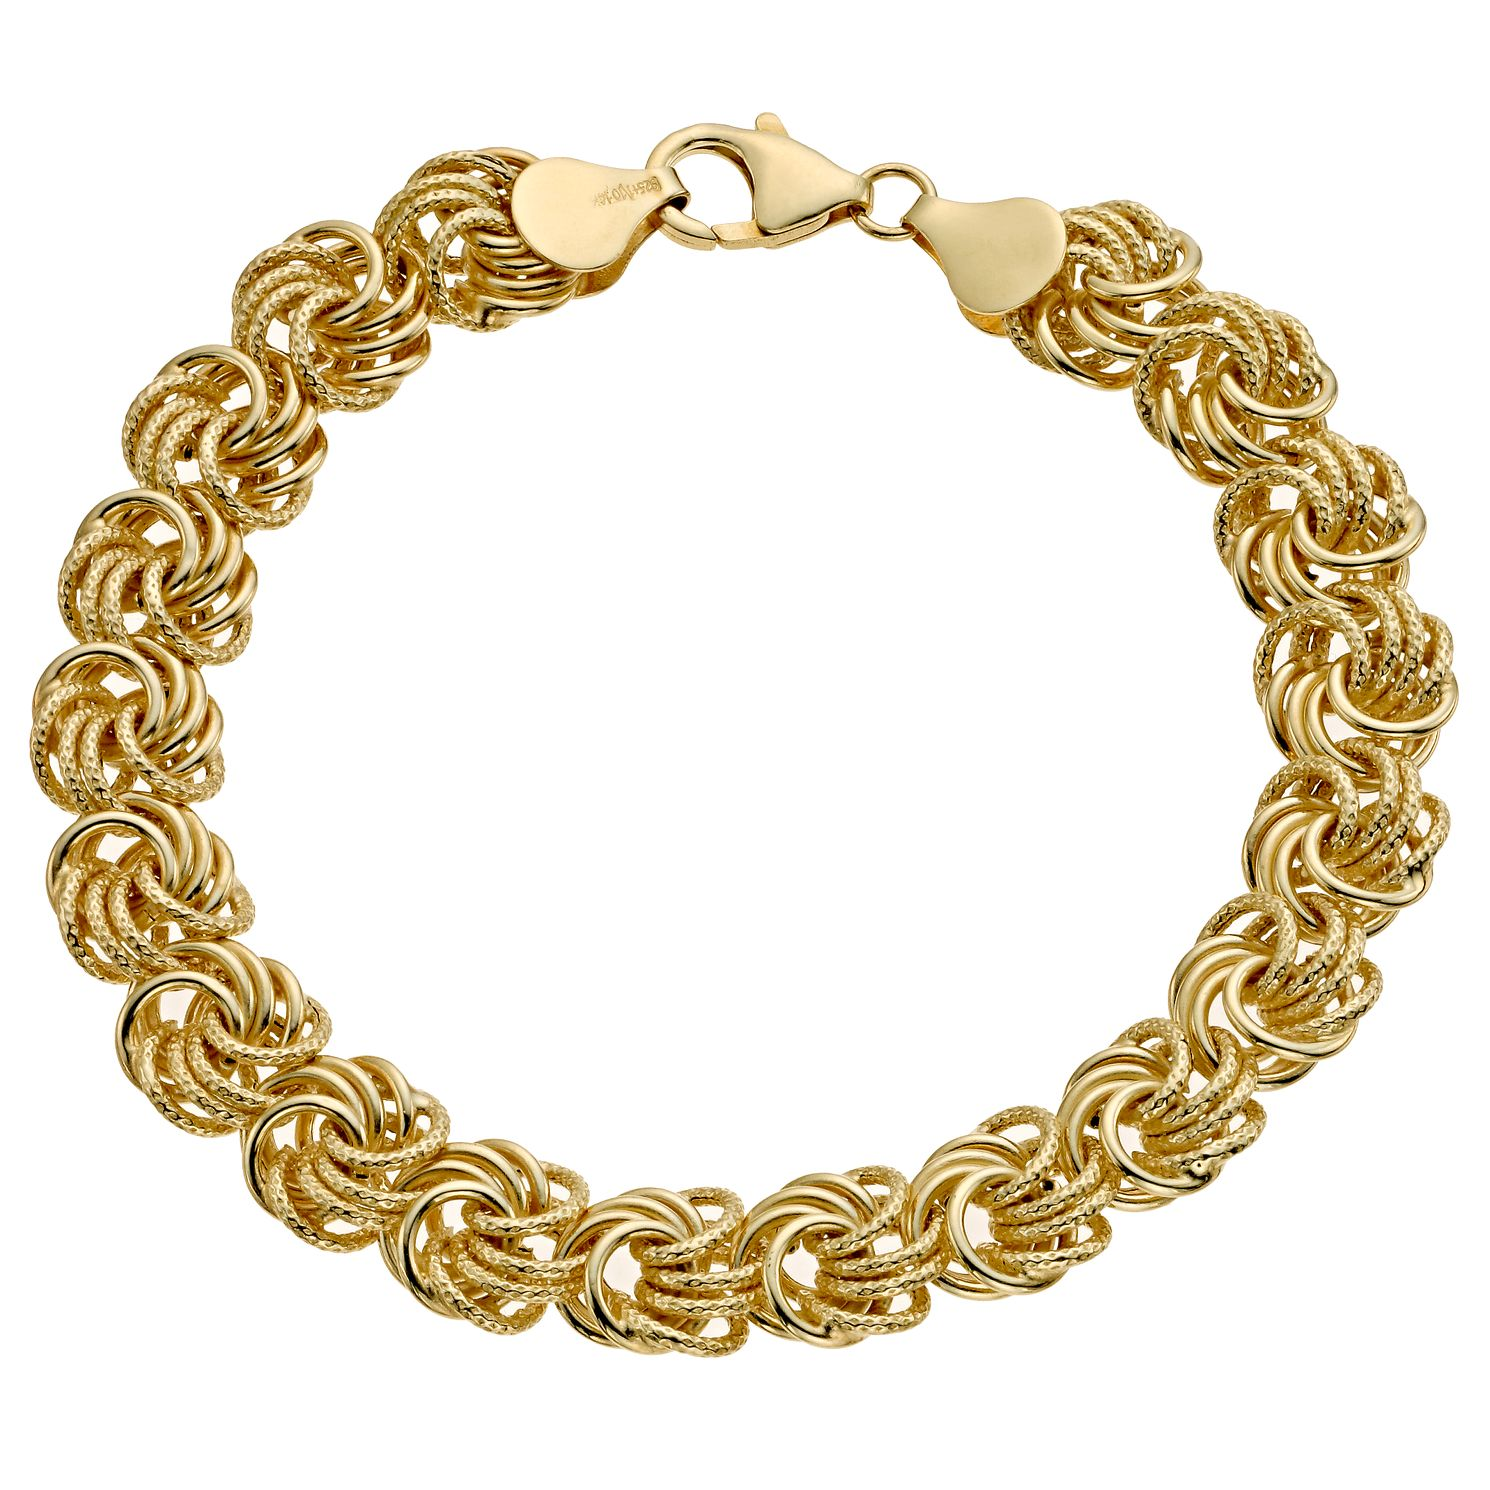 Together Bonded Silver & 9ct Yellow Gold Swirl Link Bracelet - Product number 9687246